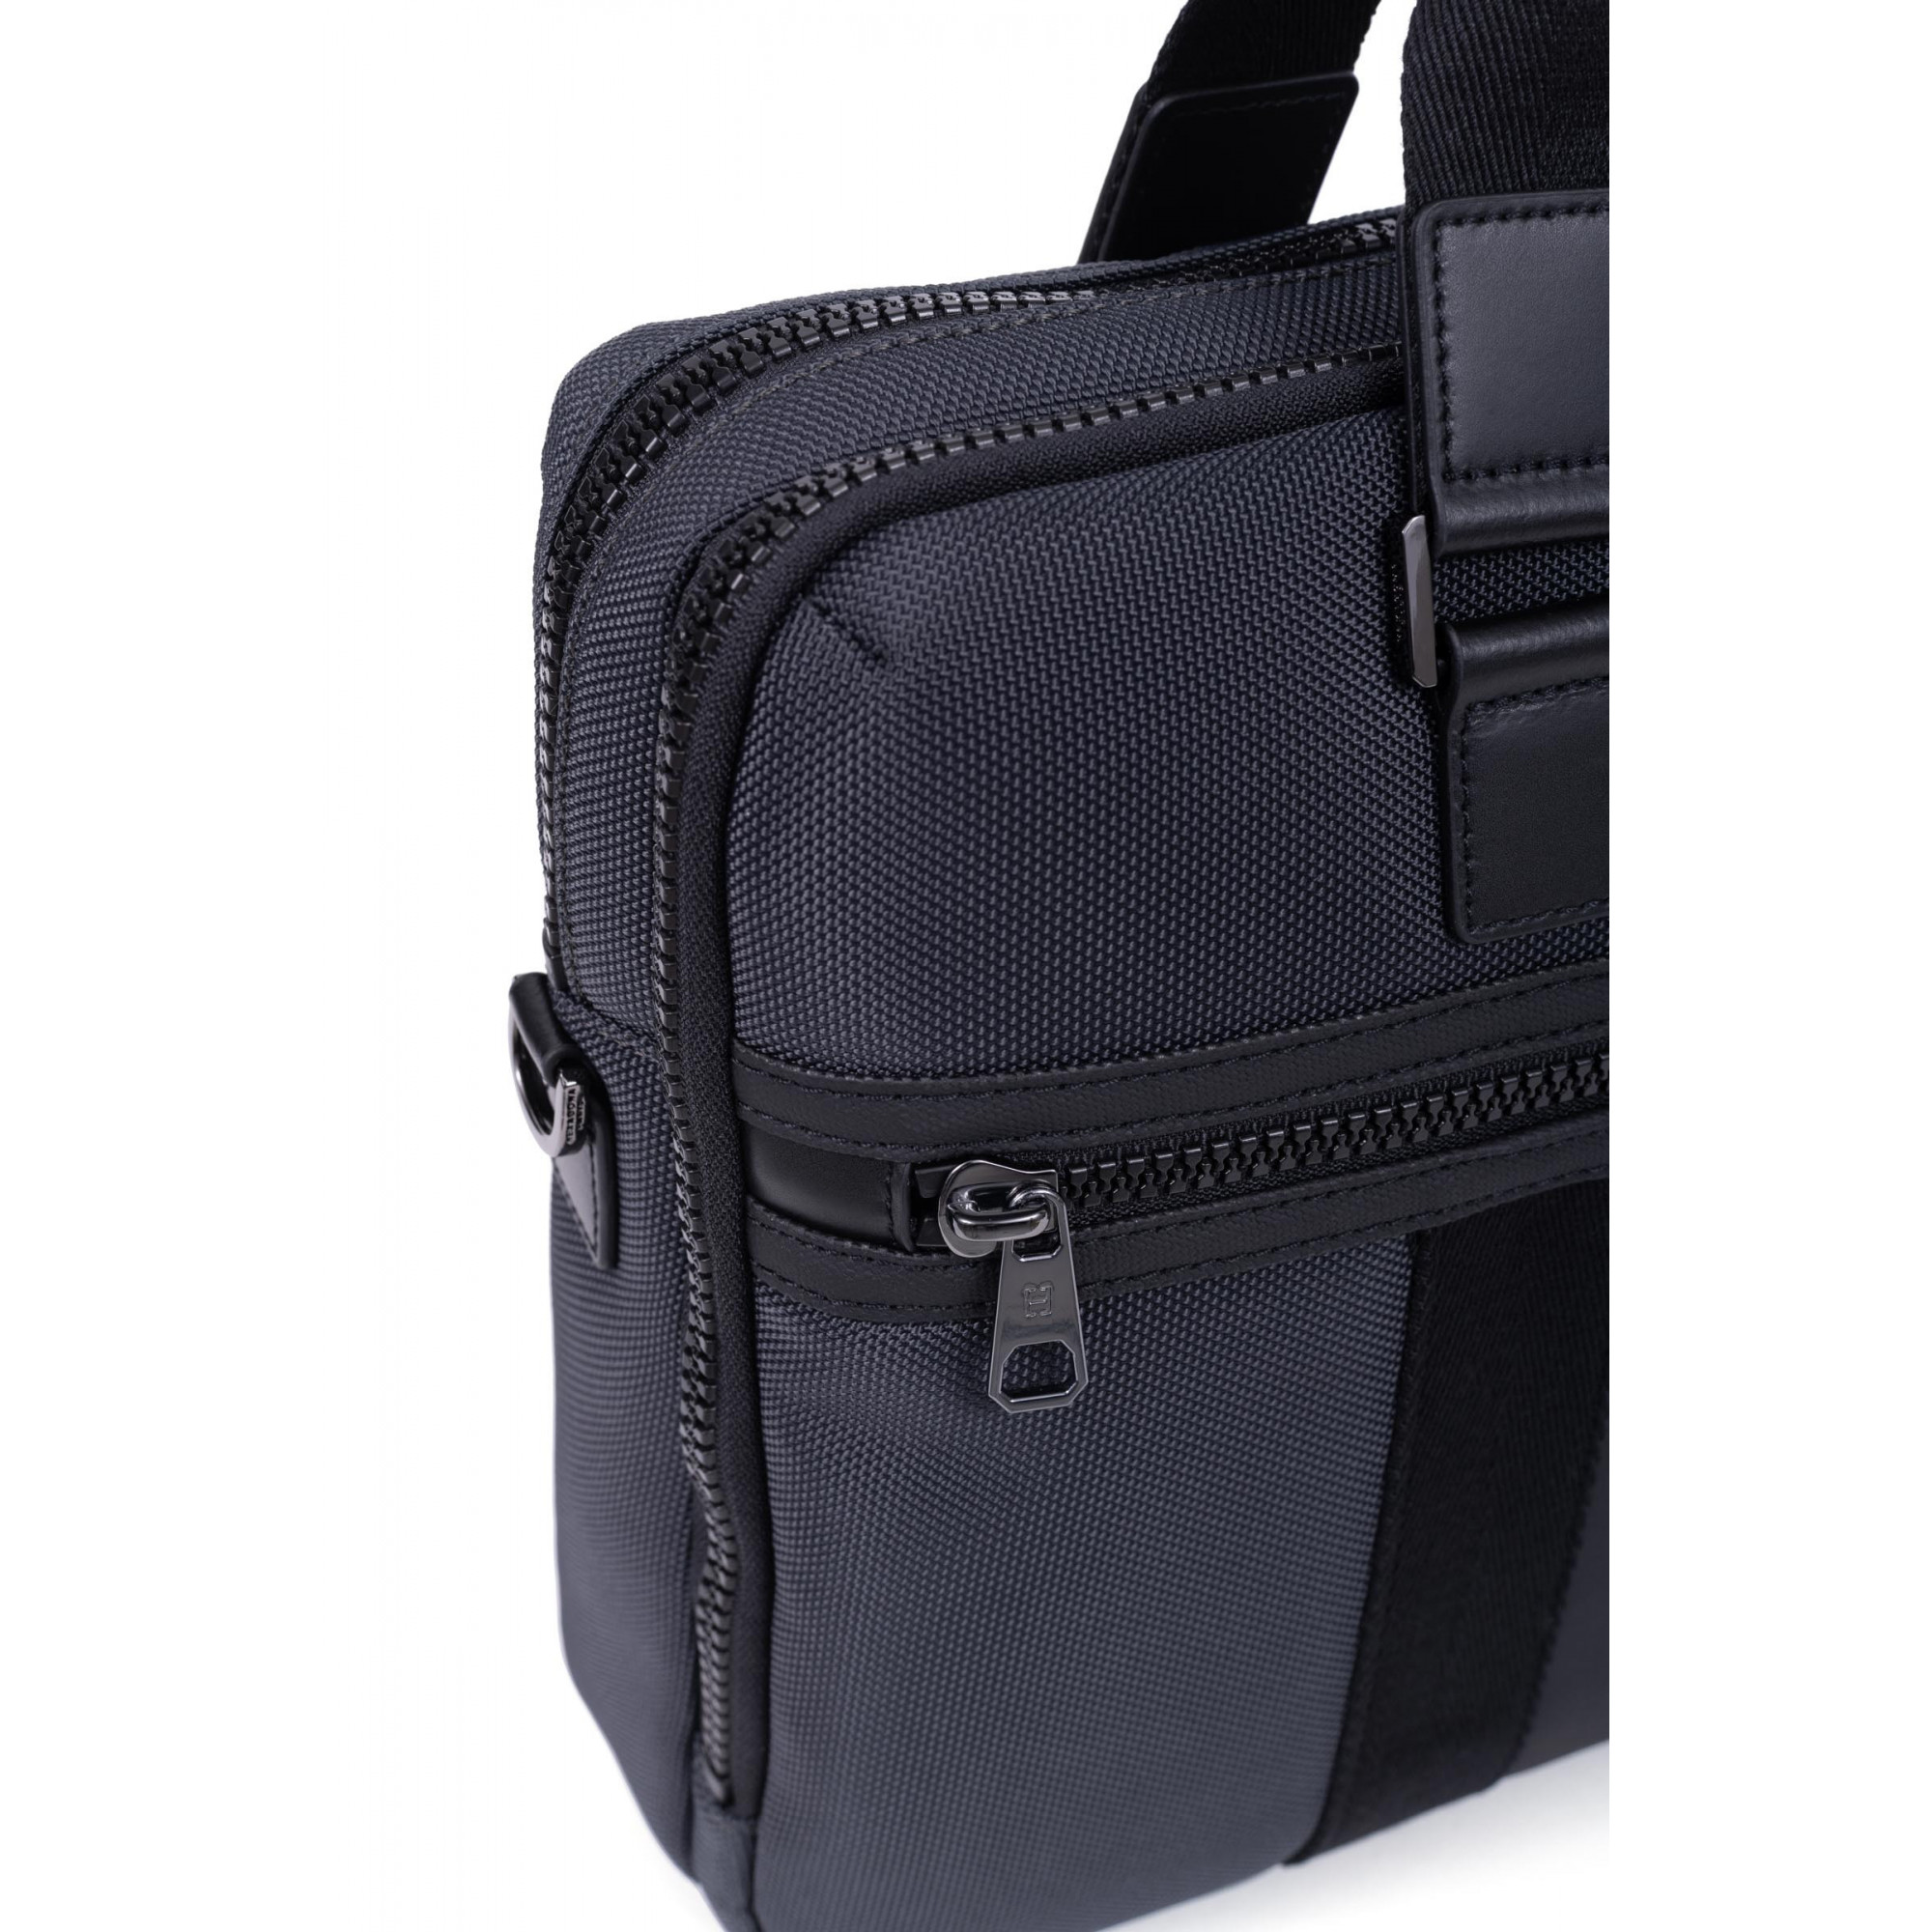 Nylon with split leather computer bag